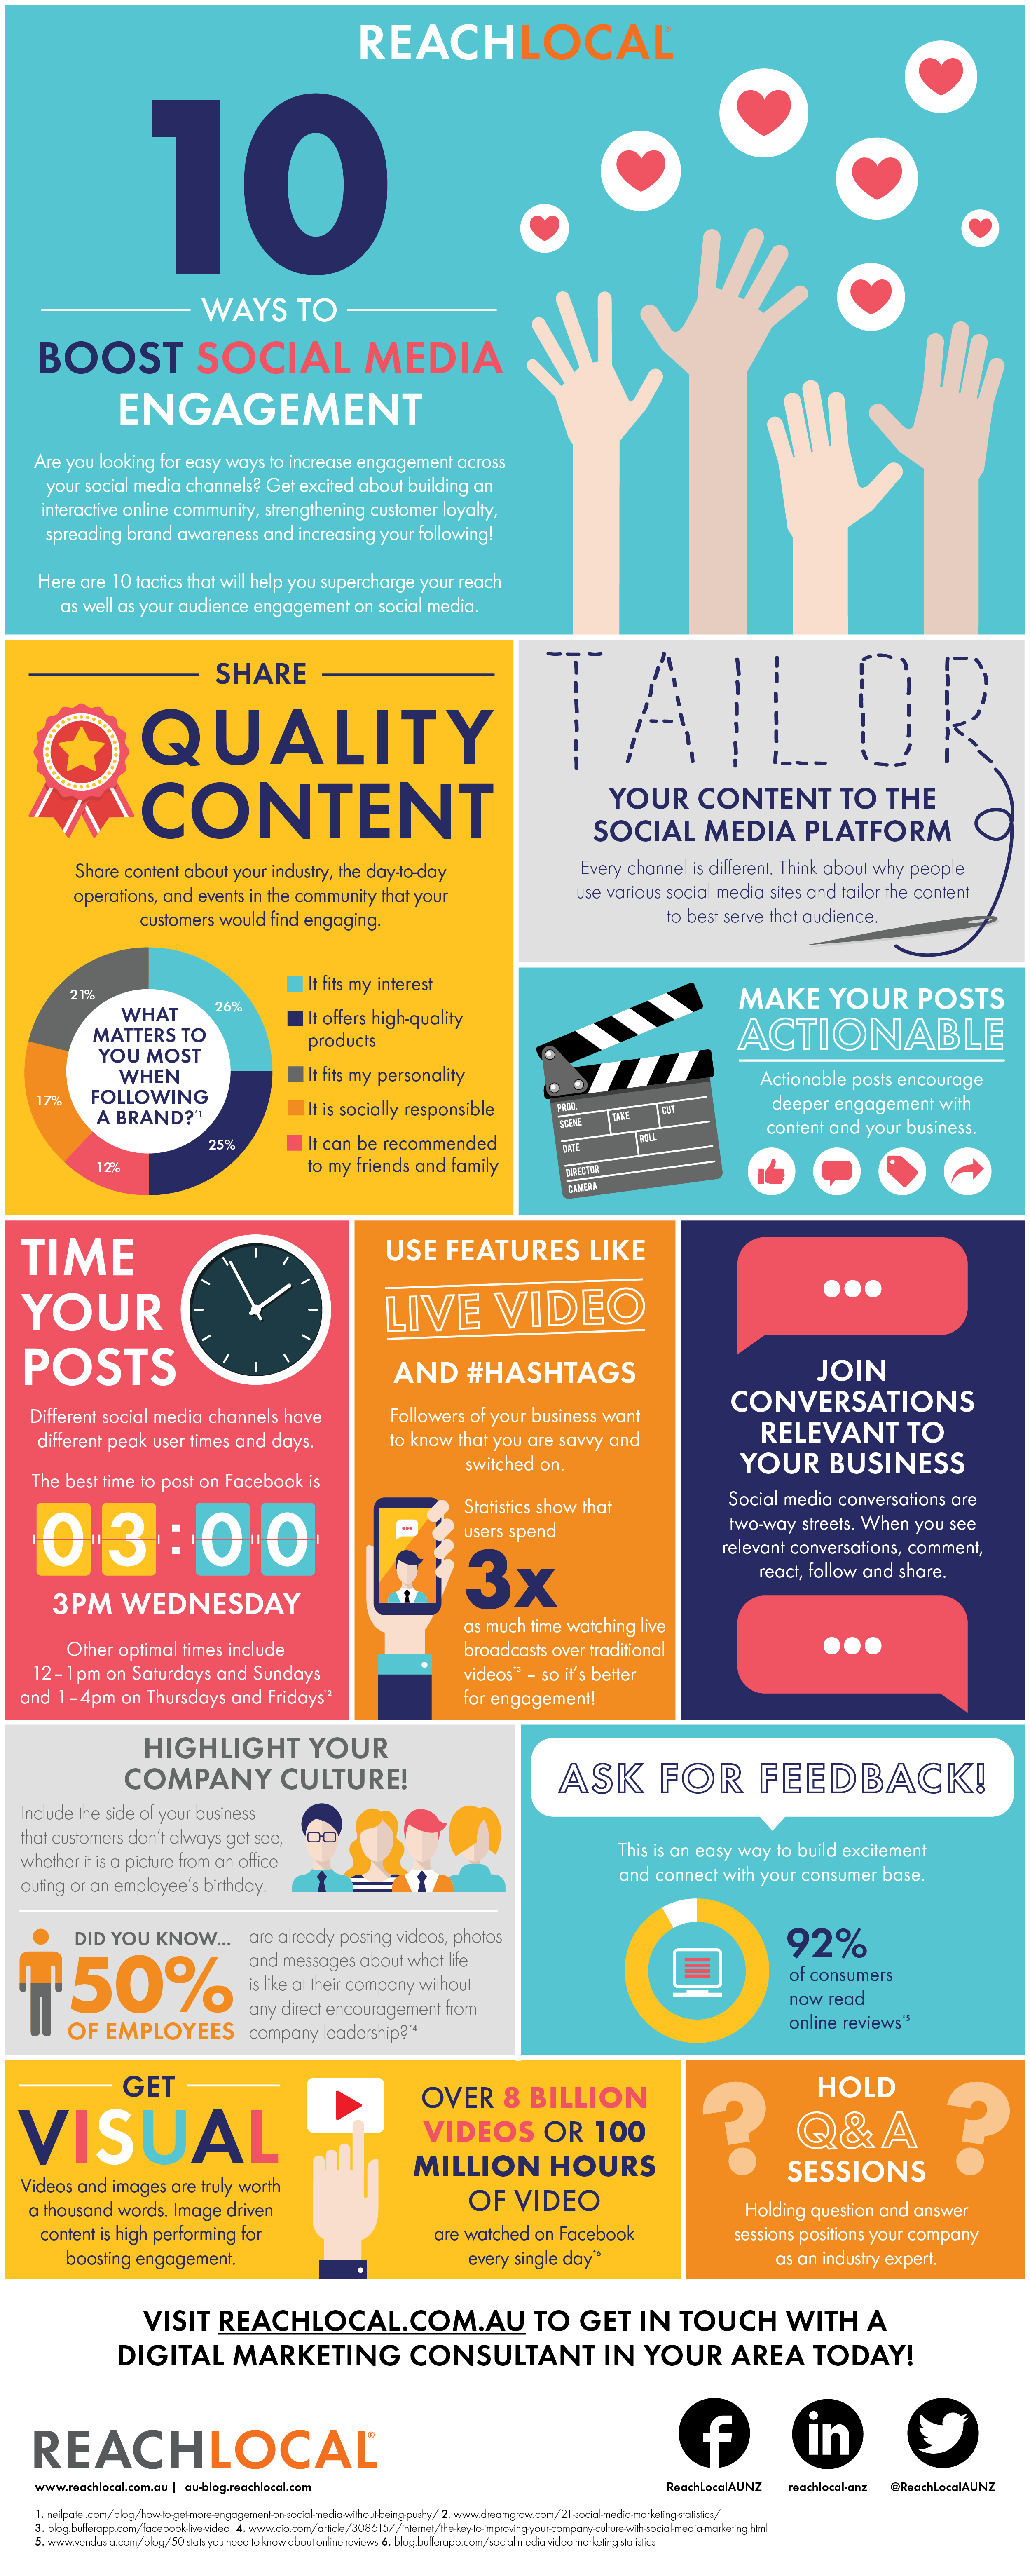 10 Ways to Boost Social Media Engagement